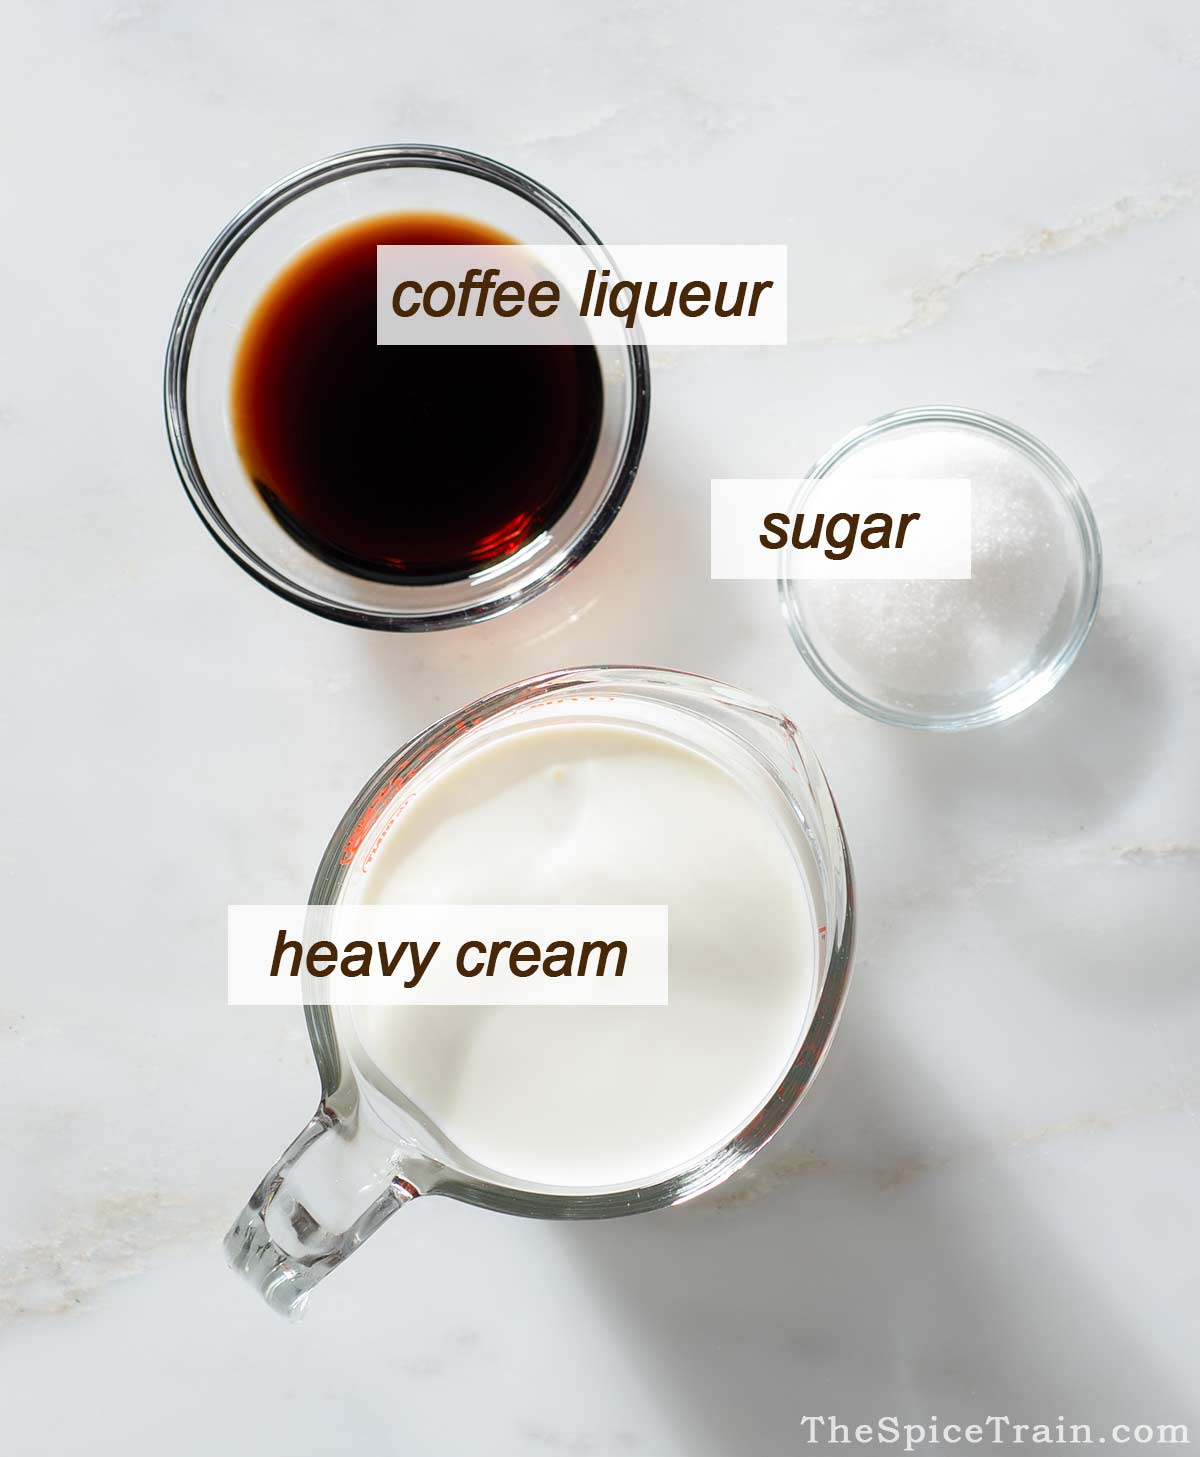 All ingredients needed to make coffee whipped cream filling.